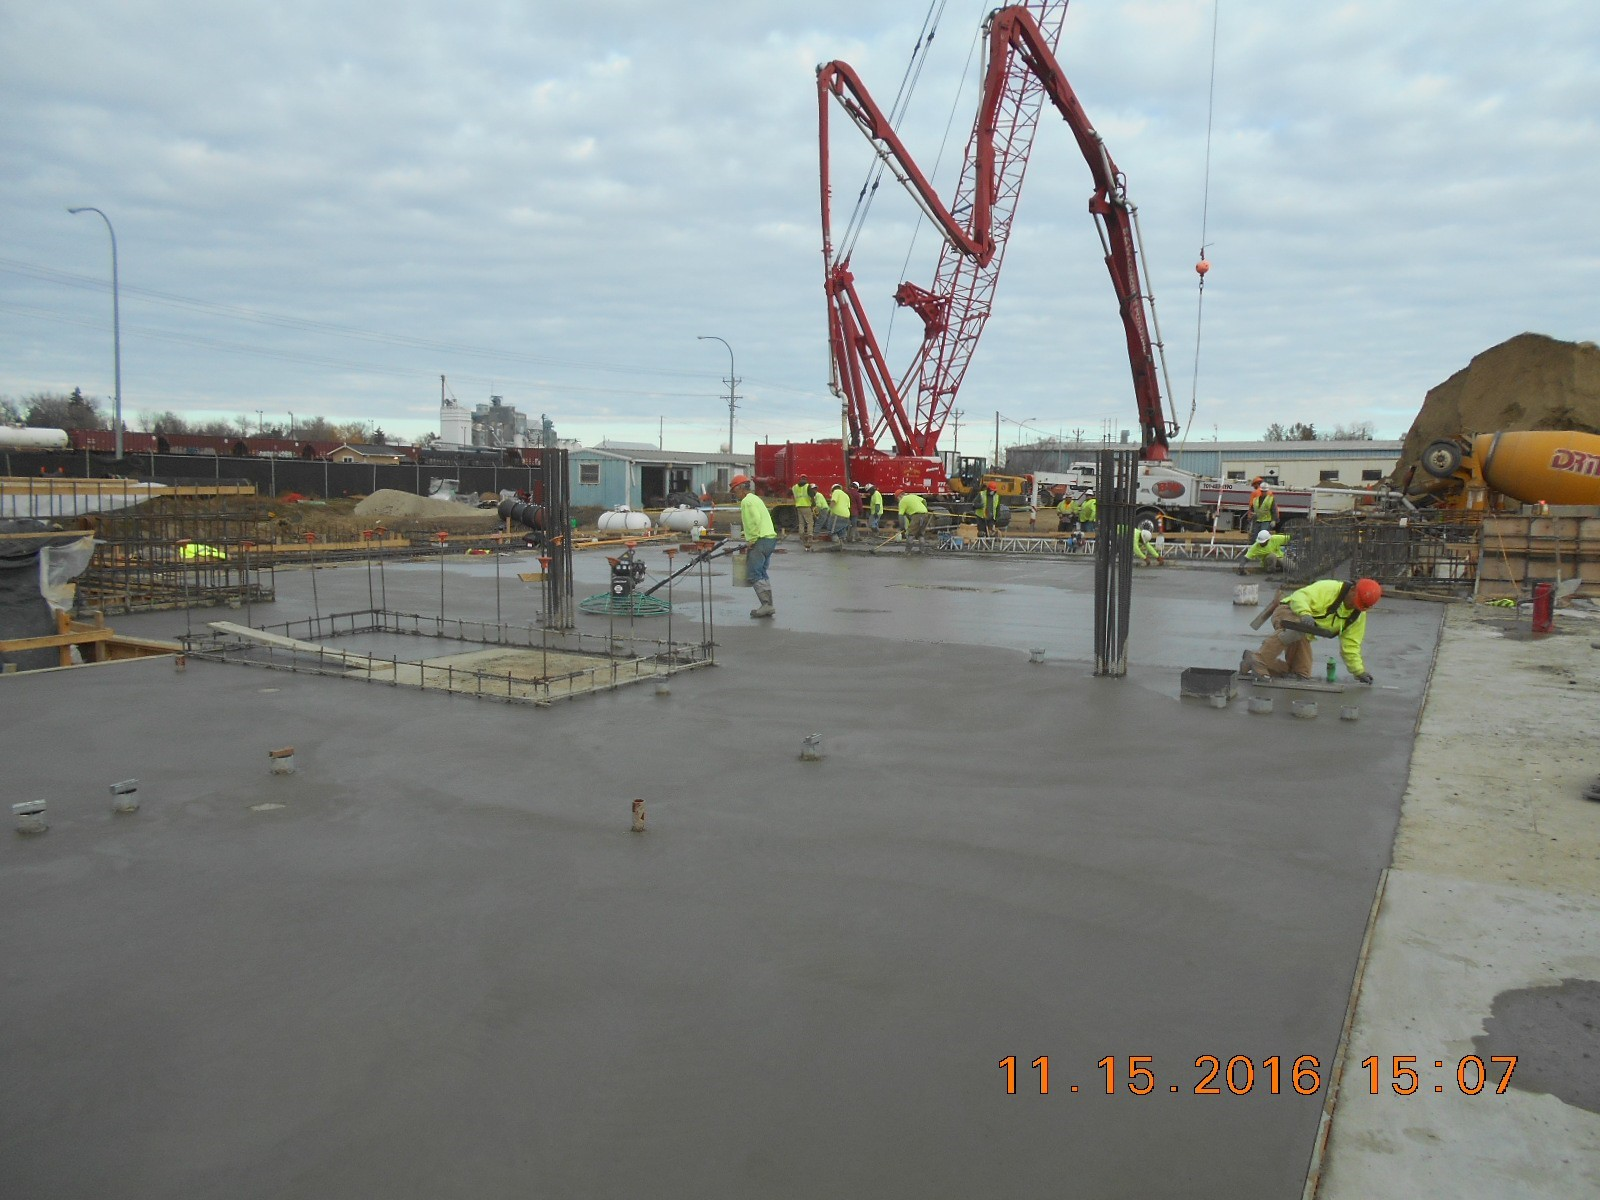 JTJ finishing the concrete for the first floor slab, pour 3.